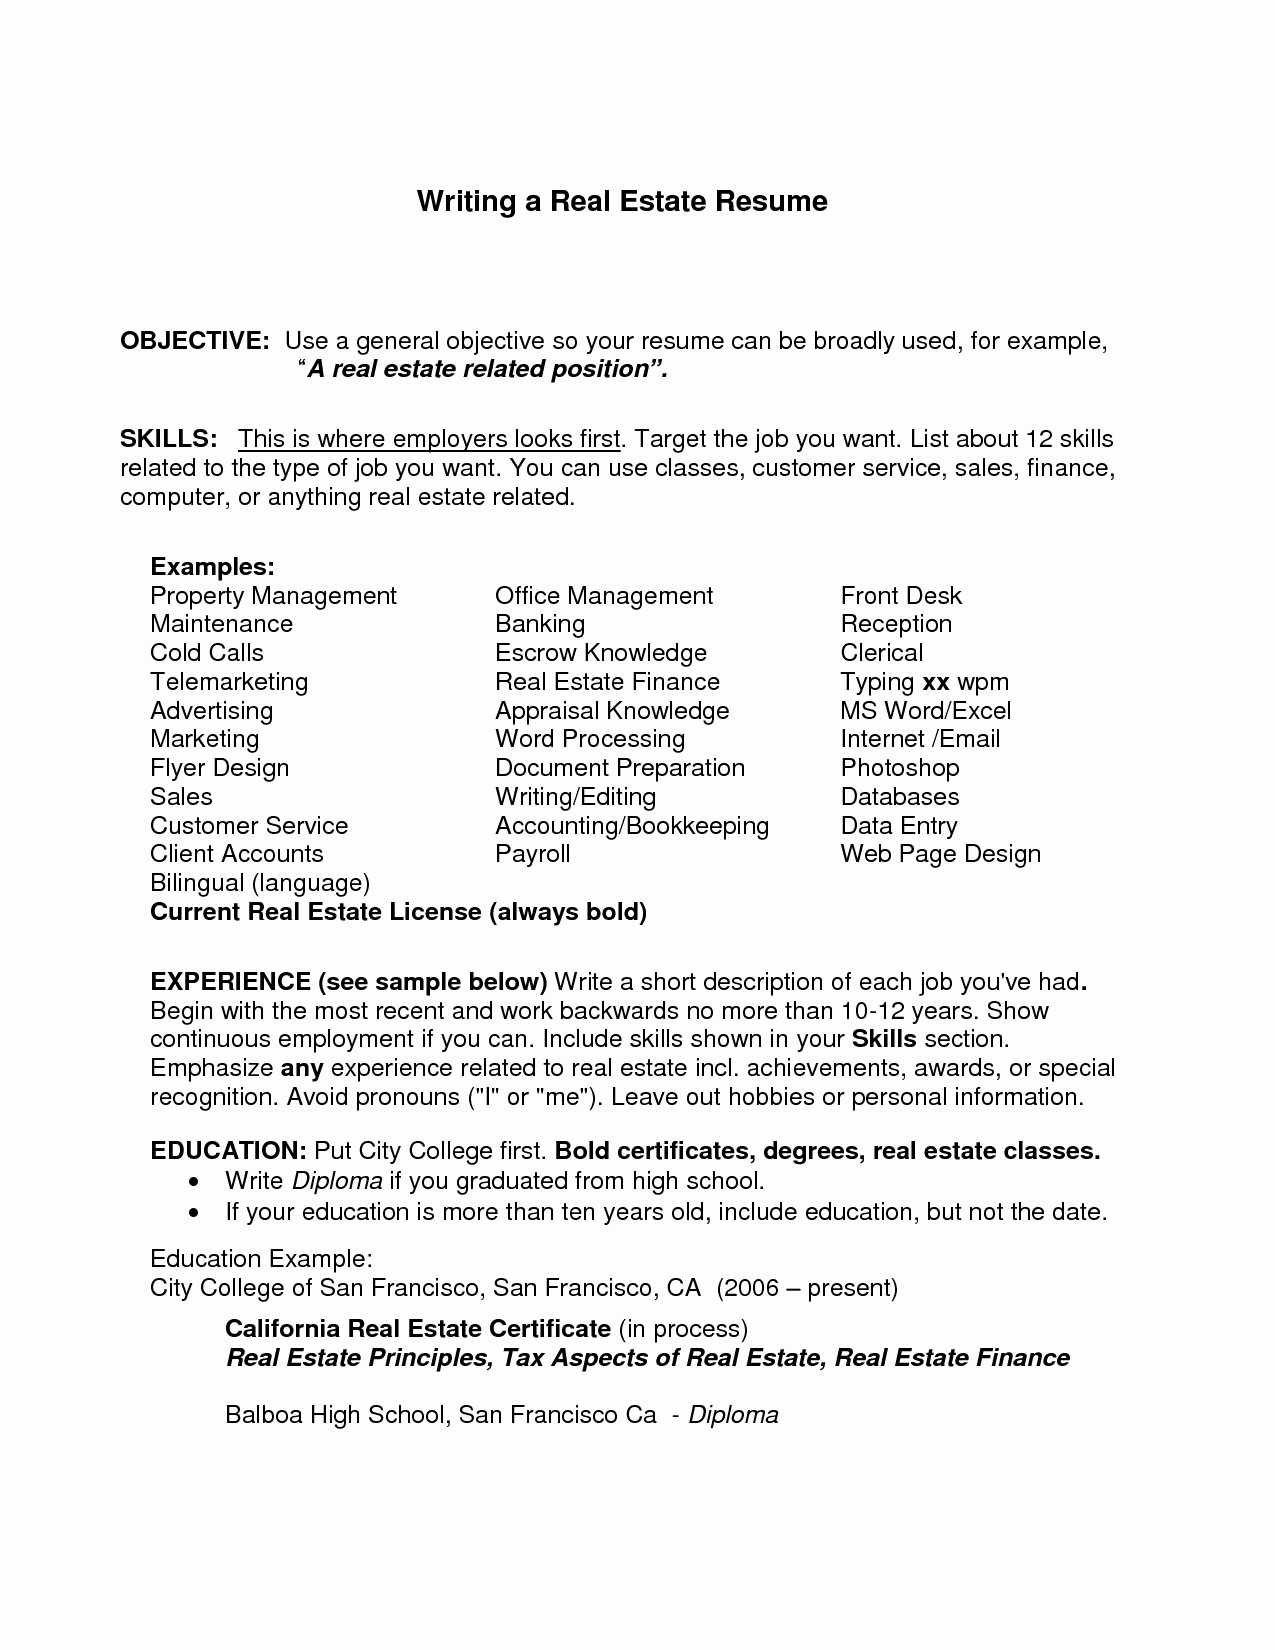 Generic Objective for Resume New General Resume Objective Examples Job Resume Objective